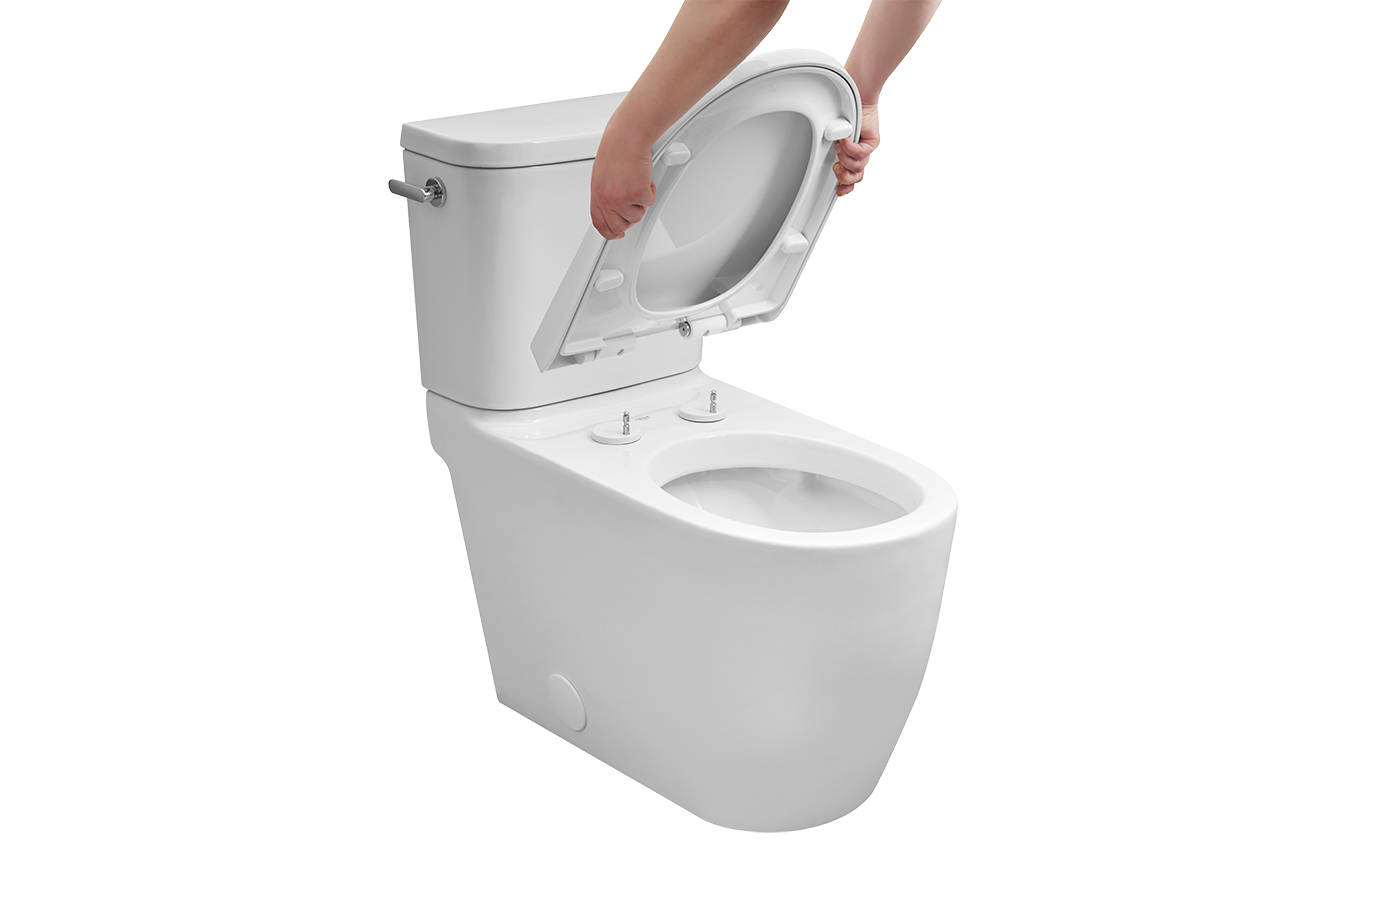 No more trying to clean in and around knobs and crevices - Grohe's quick-release toilet seat quickly clicks off the bowl, for easy cleaning.